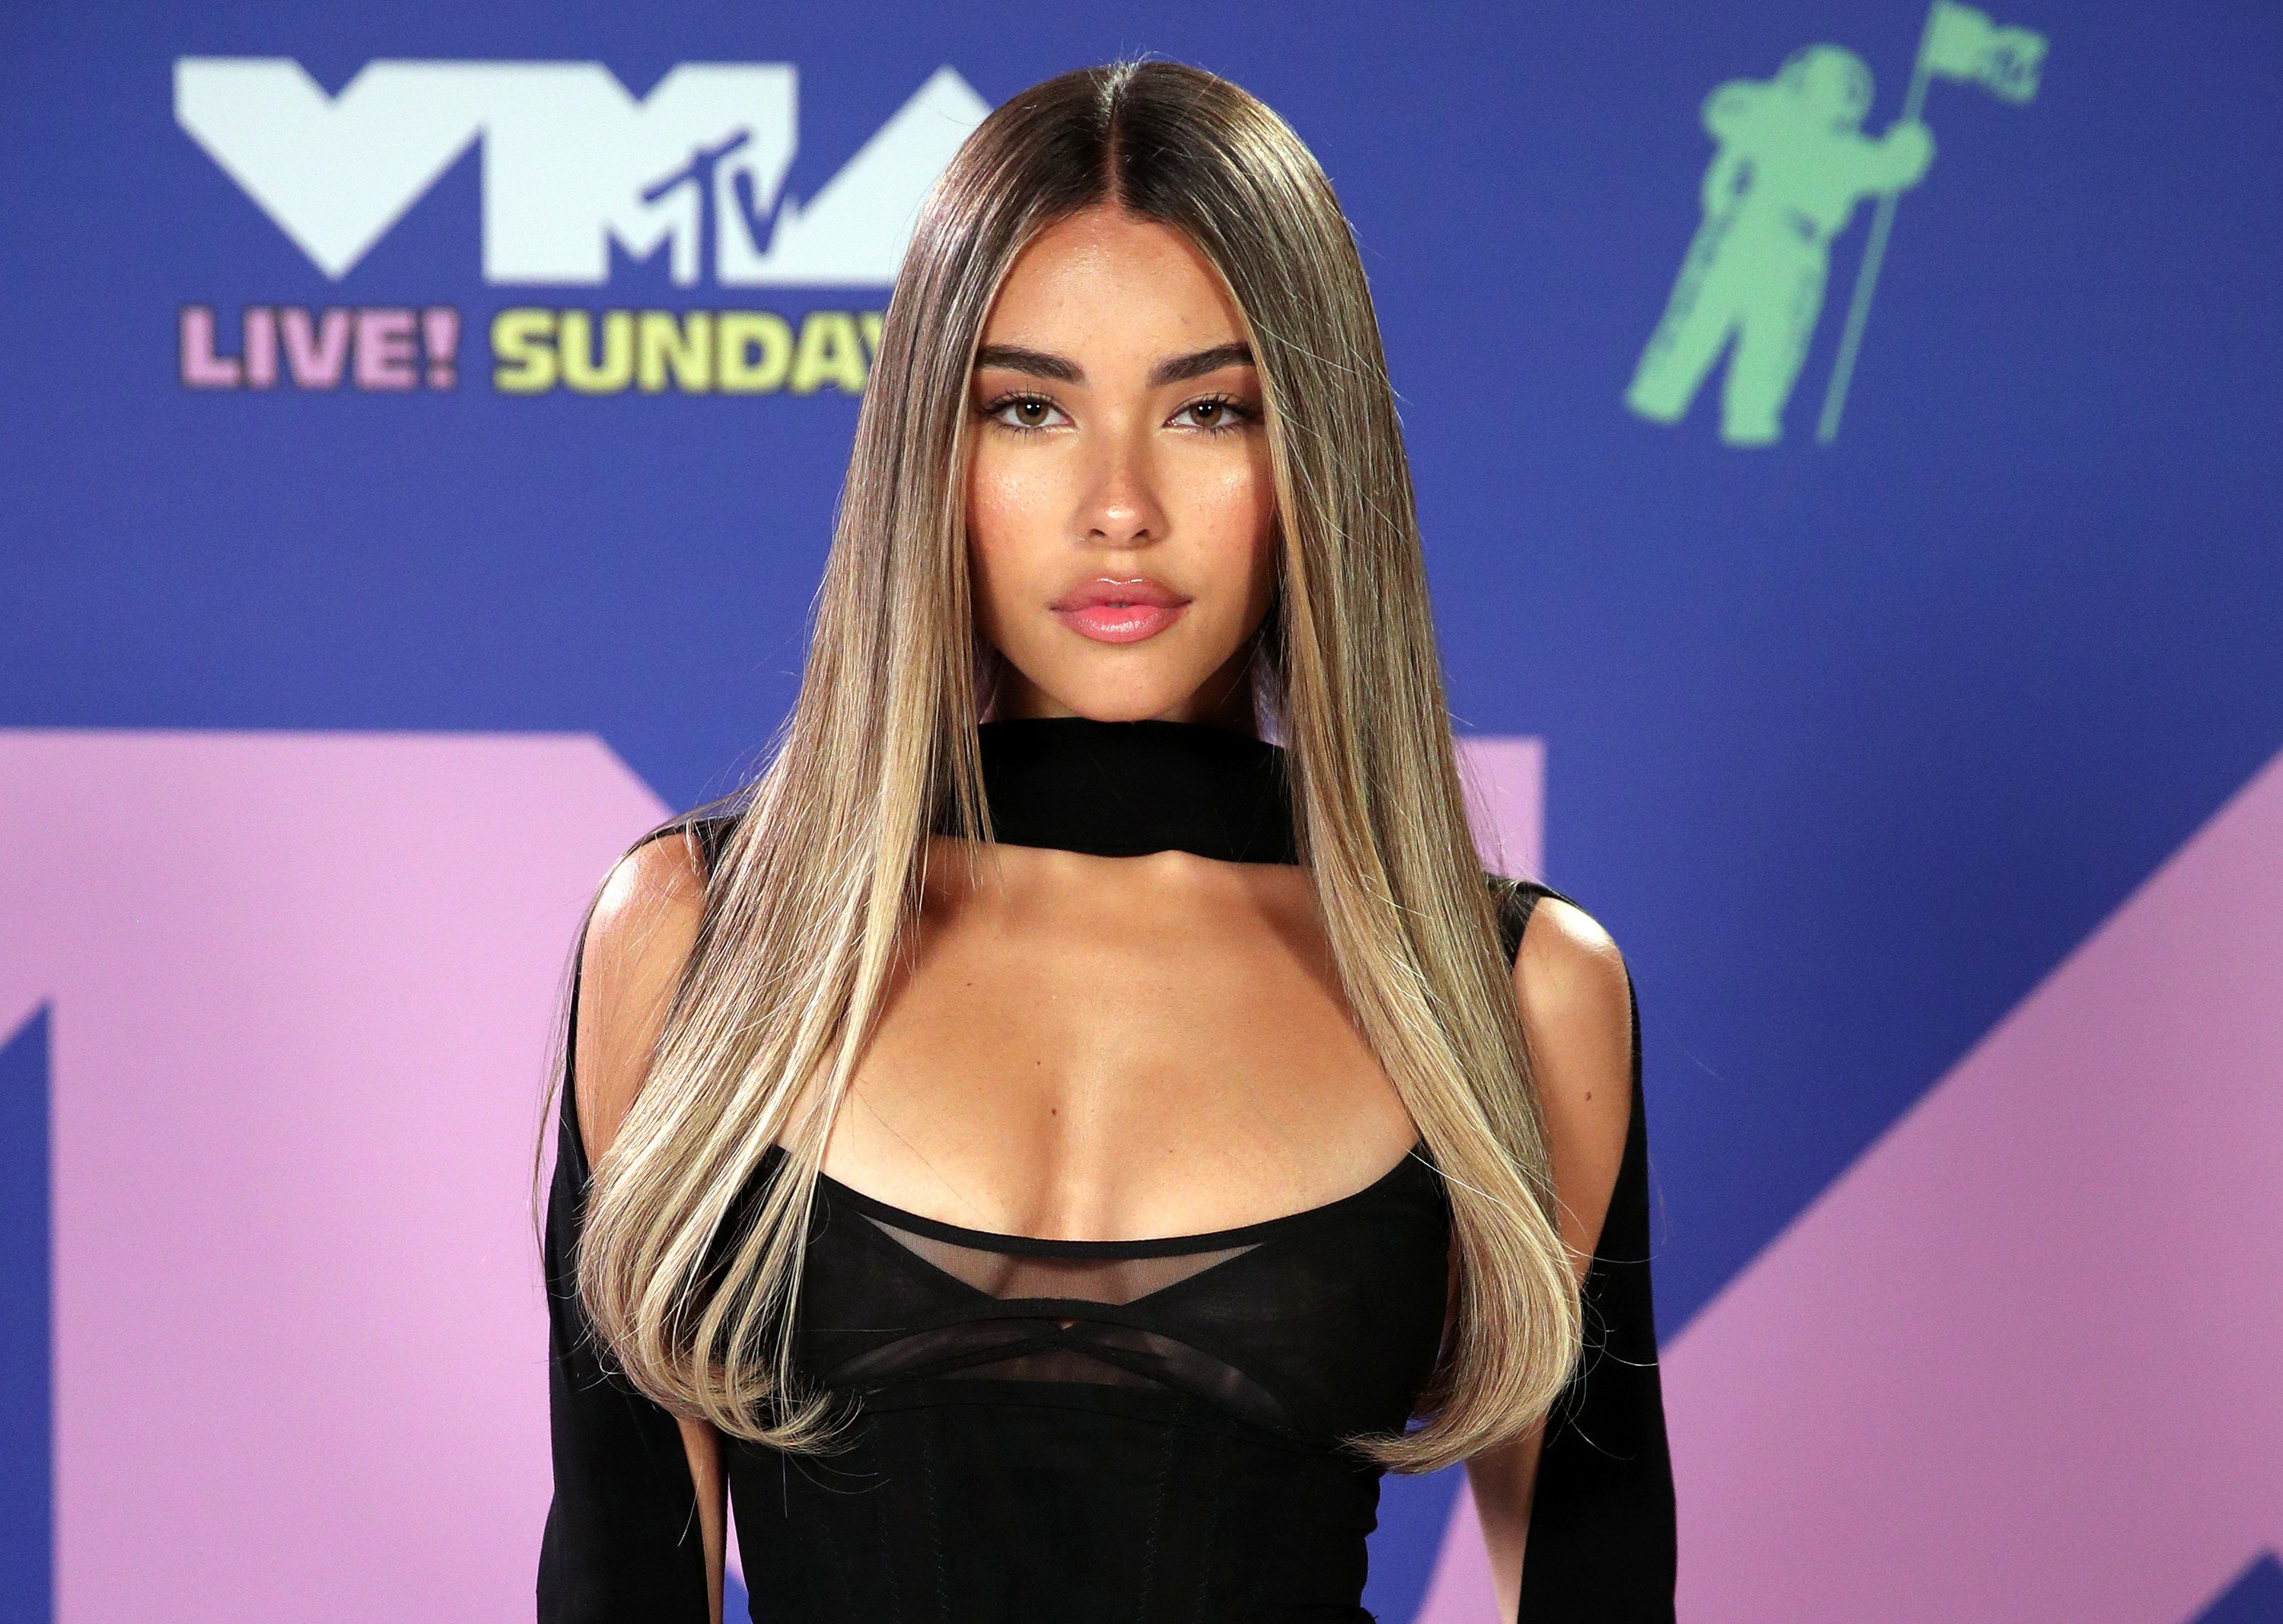 Madison in a black off-the-shoulder dress on a red carpet